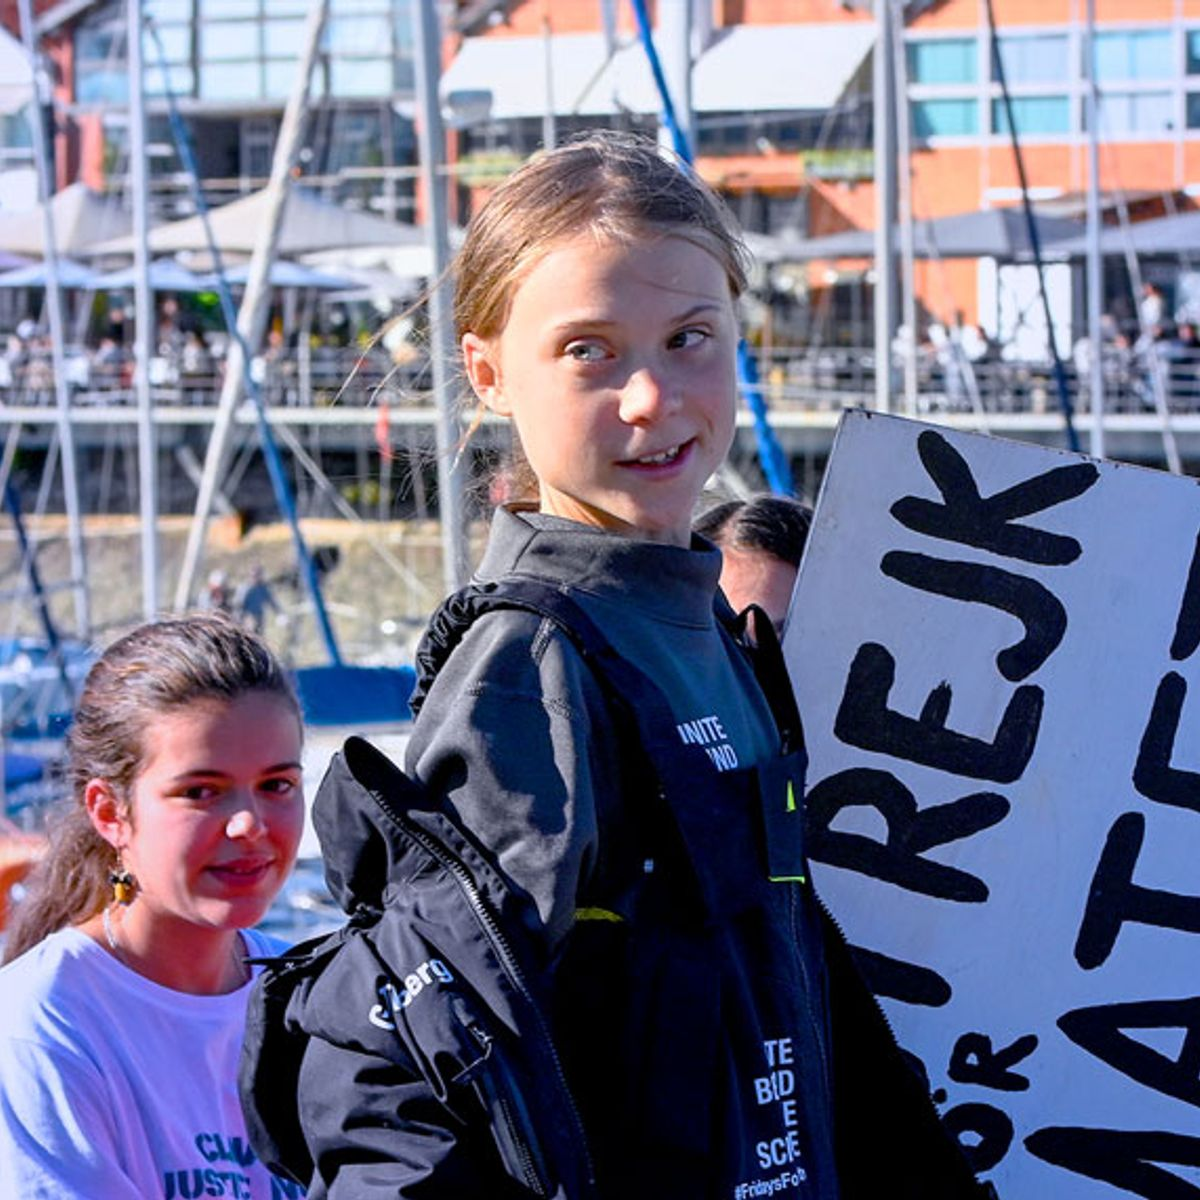 Climate activist Greta Thunberg successfully completes a three-week voyage across the Atlantic Ocean